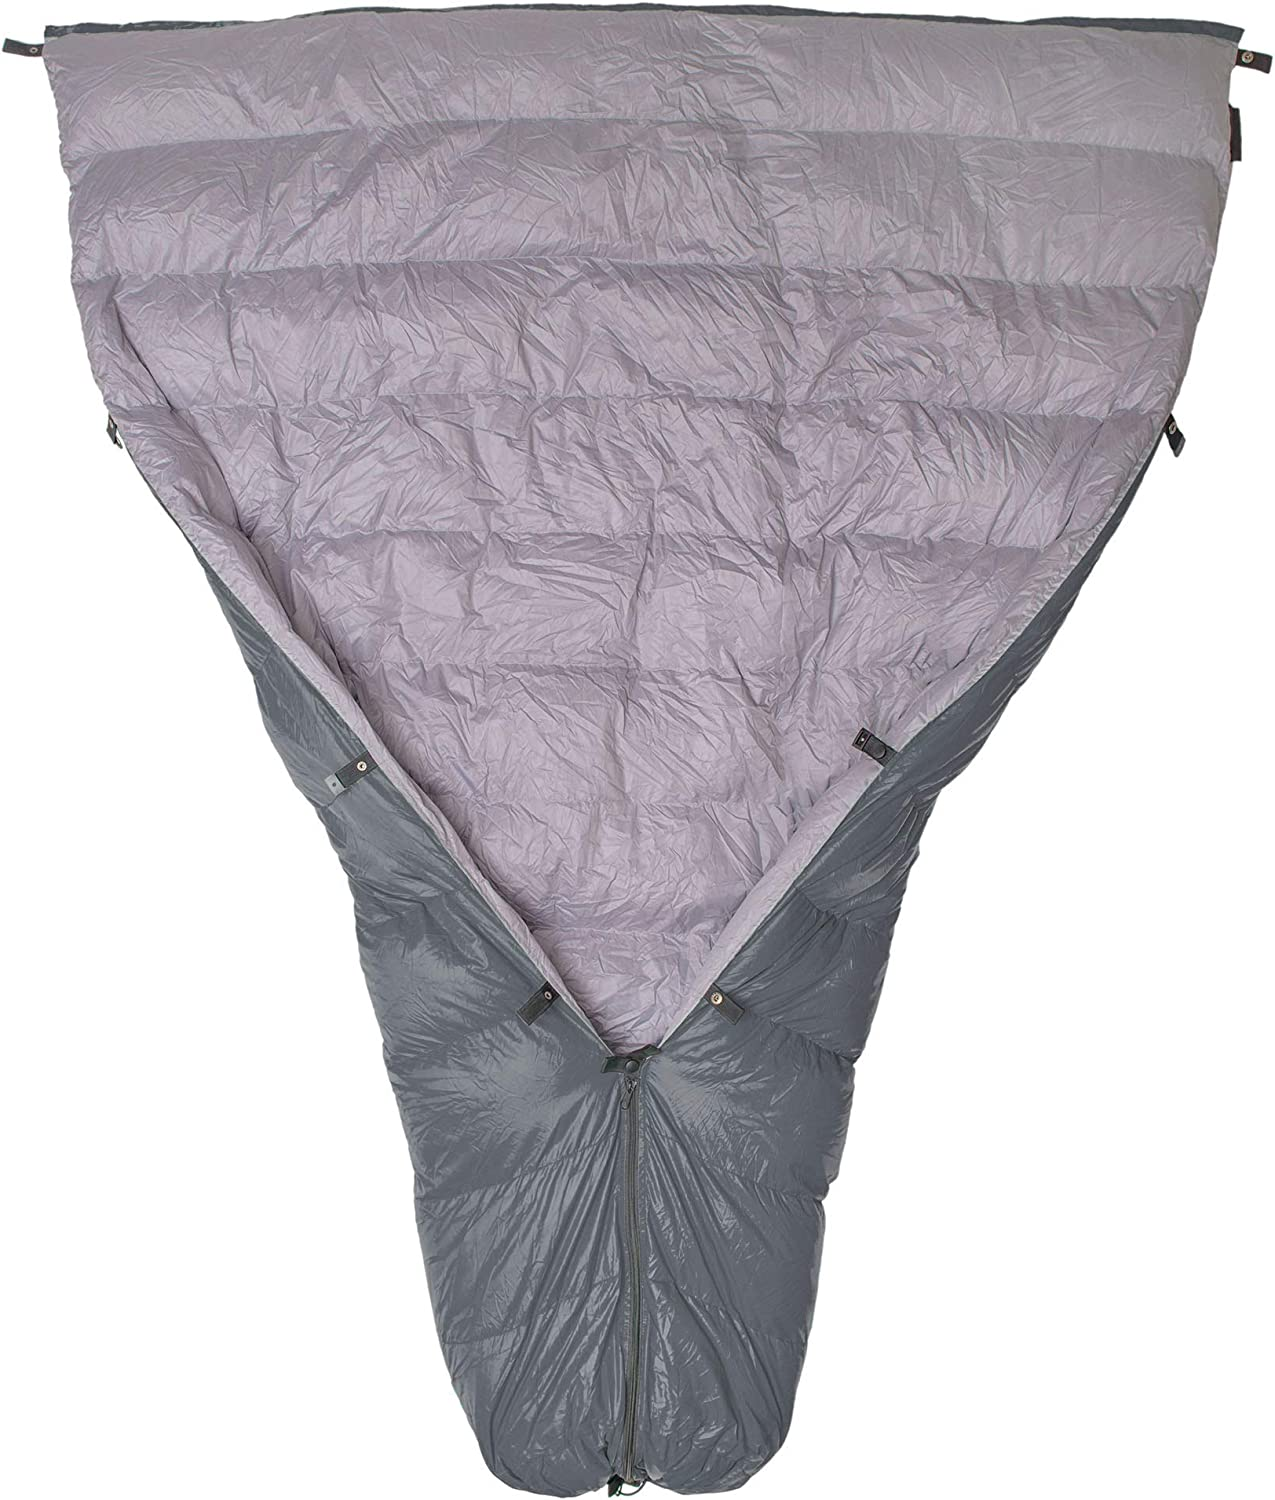 Paria Outdoor Products Thermodown 15 Degree Down Sleeping Quilt